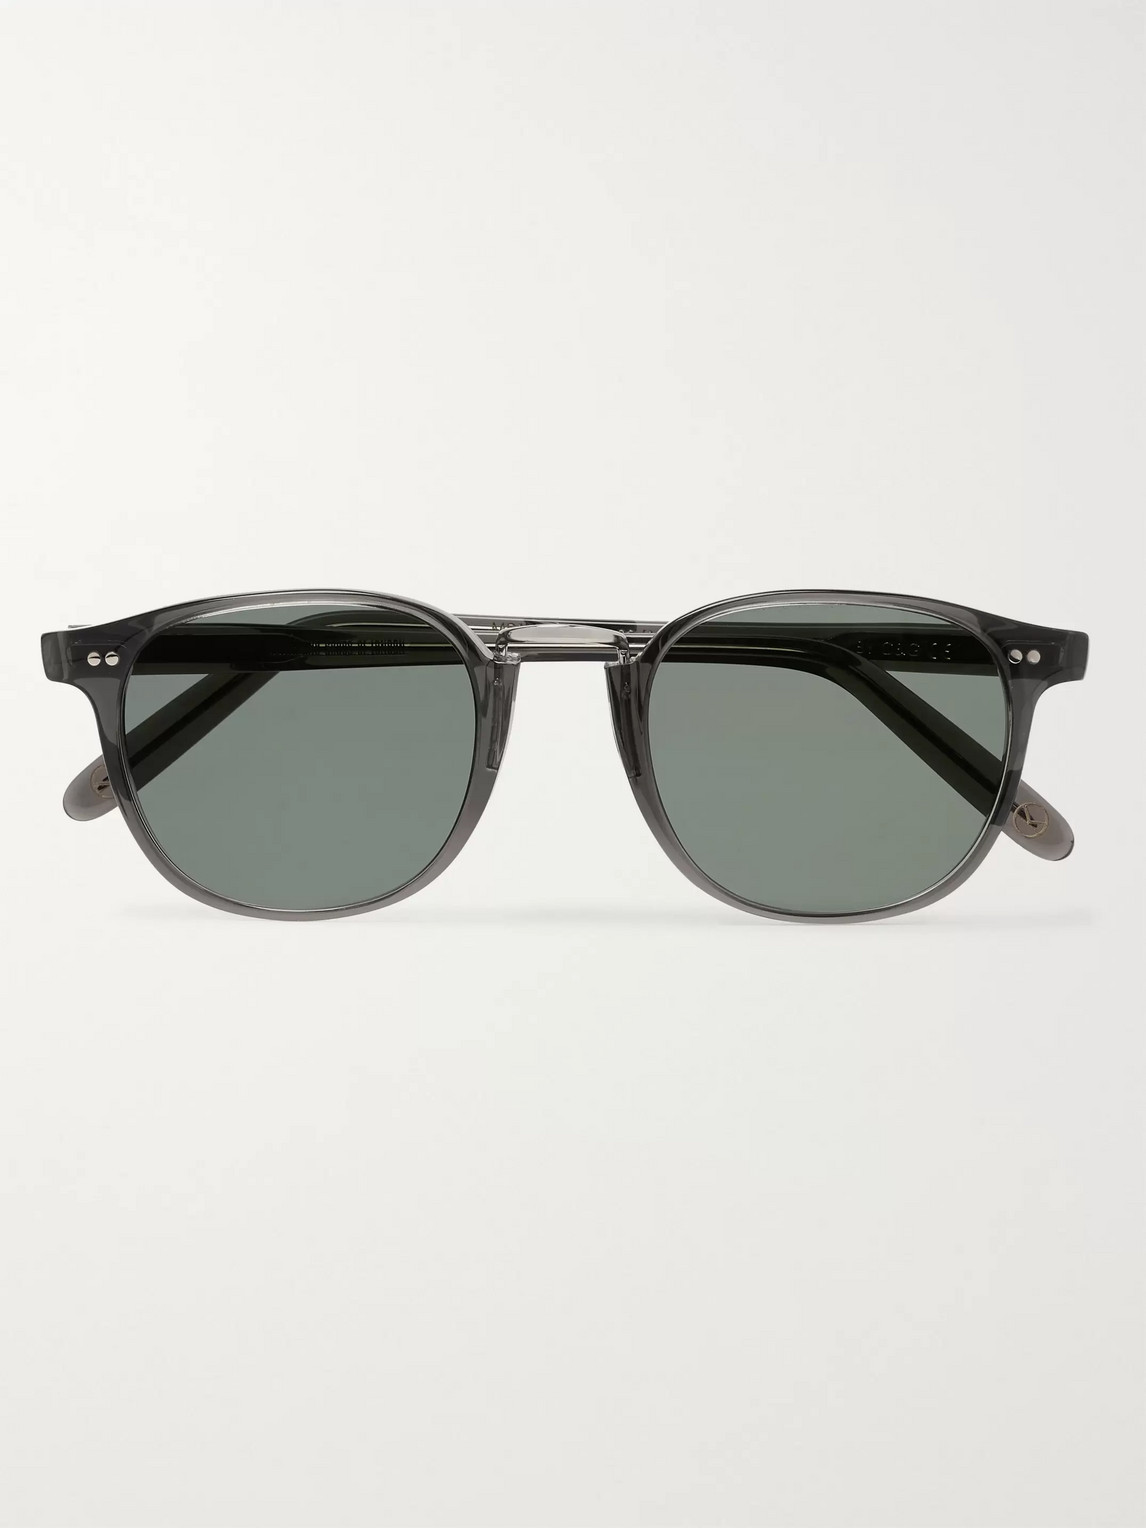 Kingsman Culter And Gross Round-frame Acetate Sunglasses In Gray